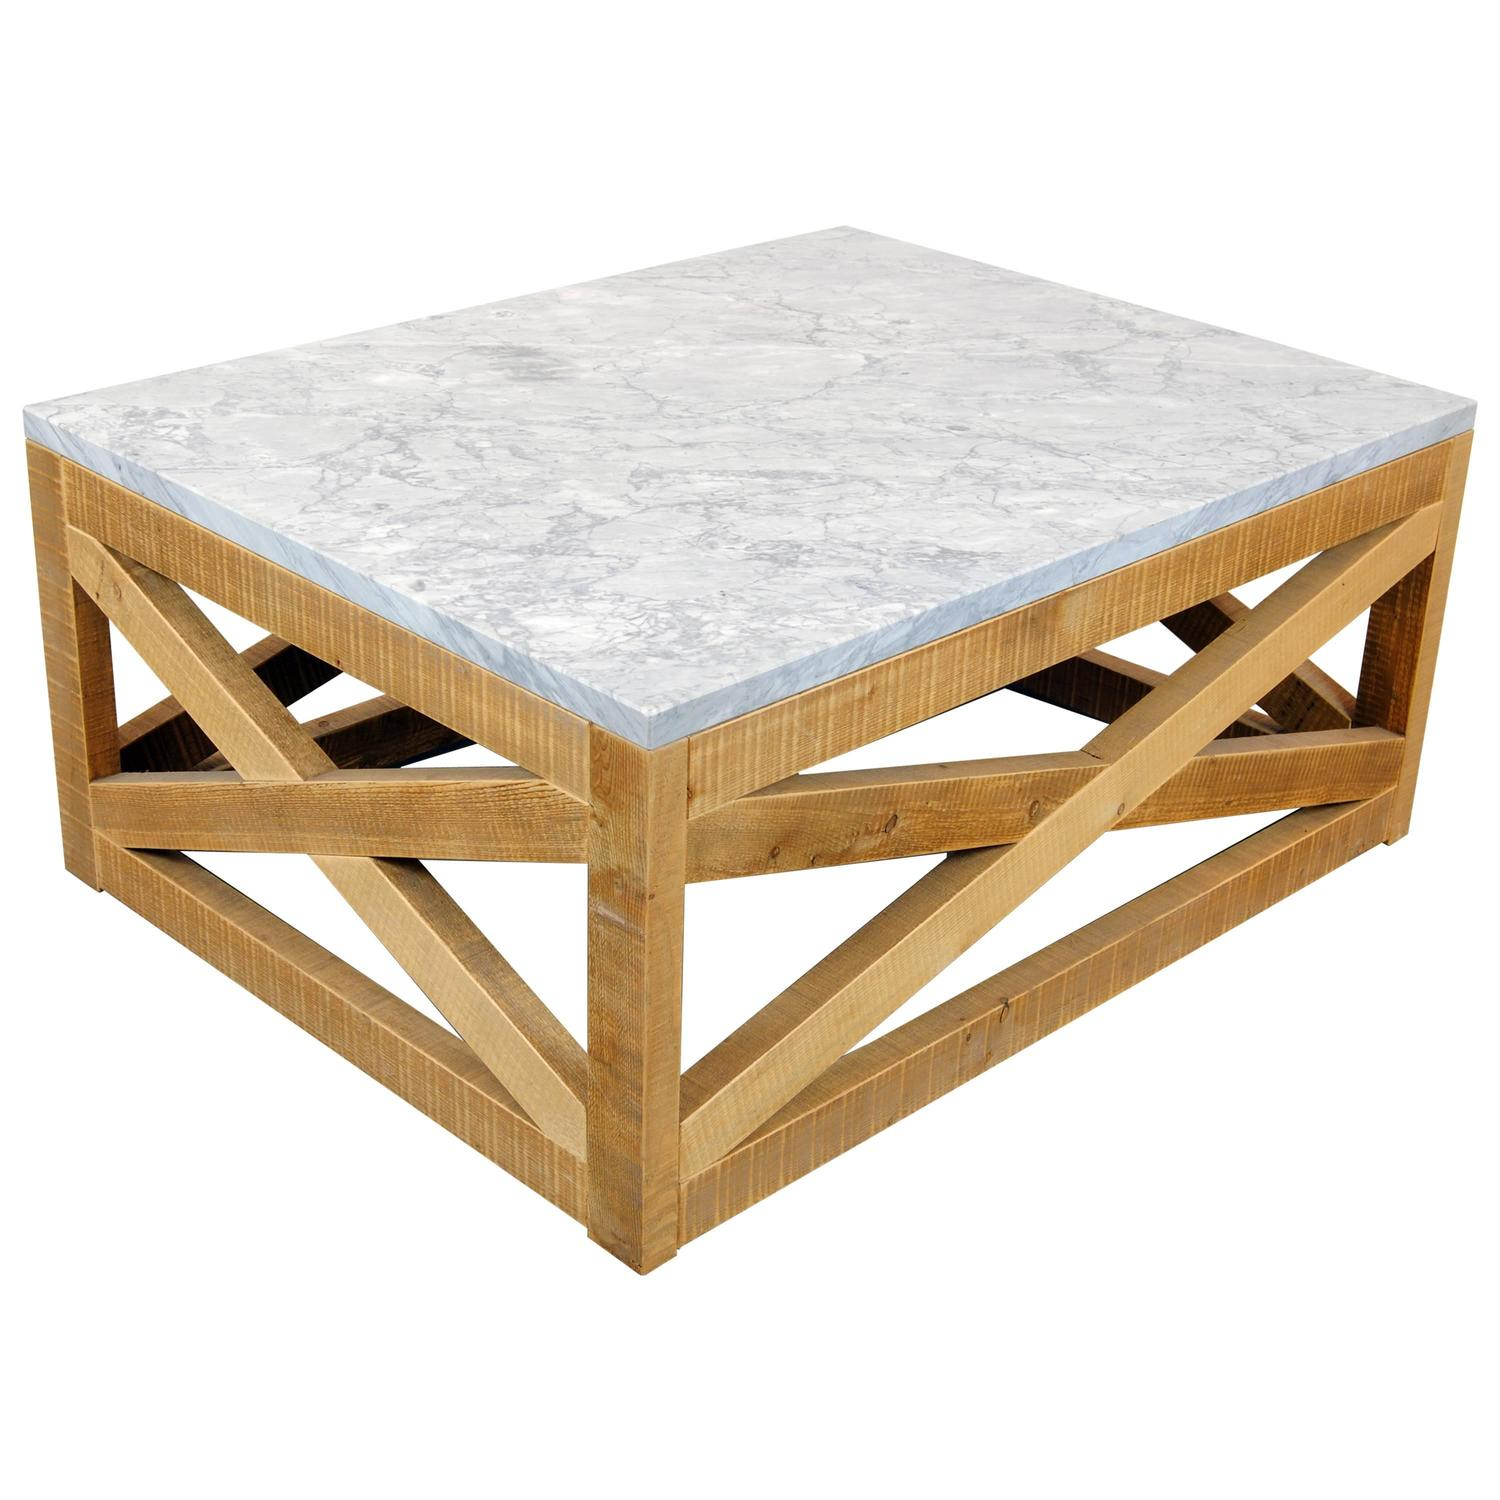 Wood And Marble Coffee Table 7ft Marble And Wood Coffee Table Or Bench Threshold Wood And